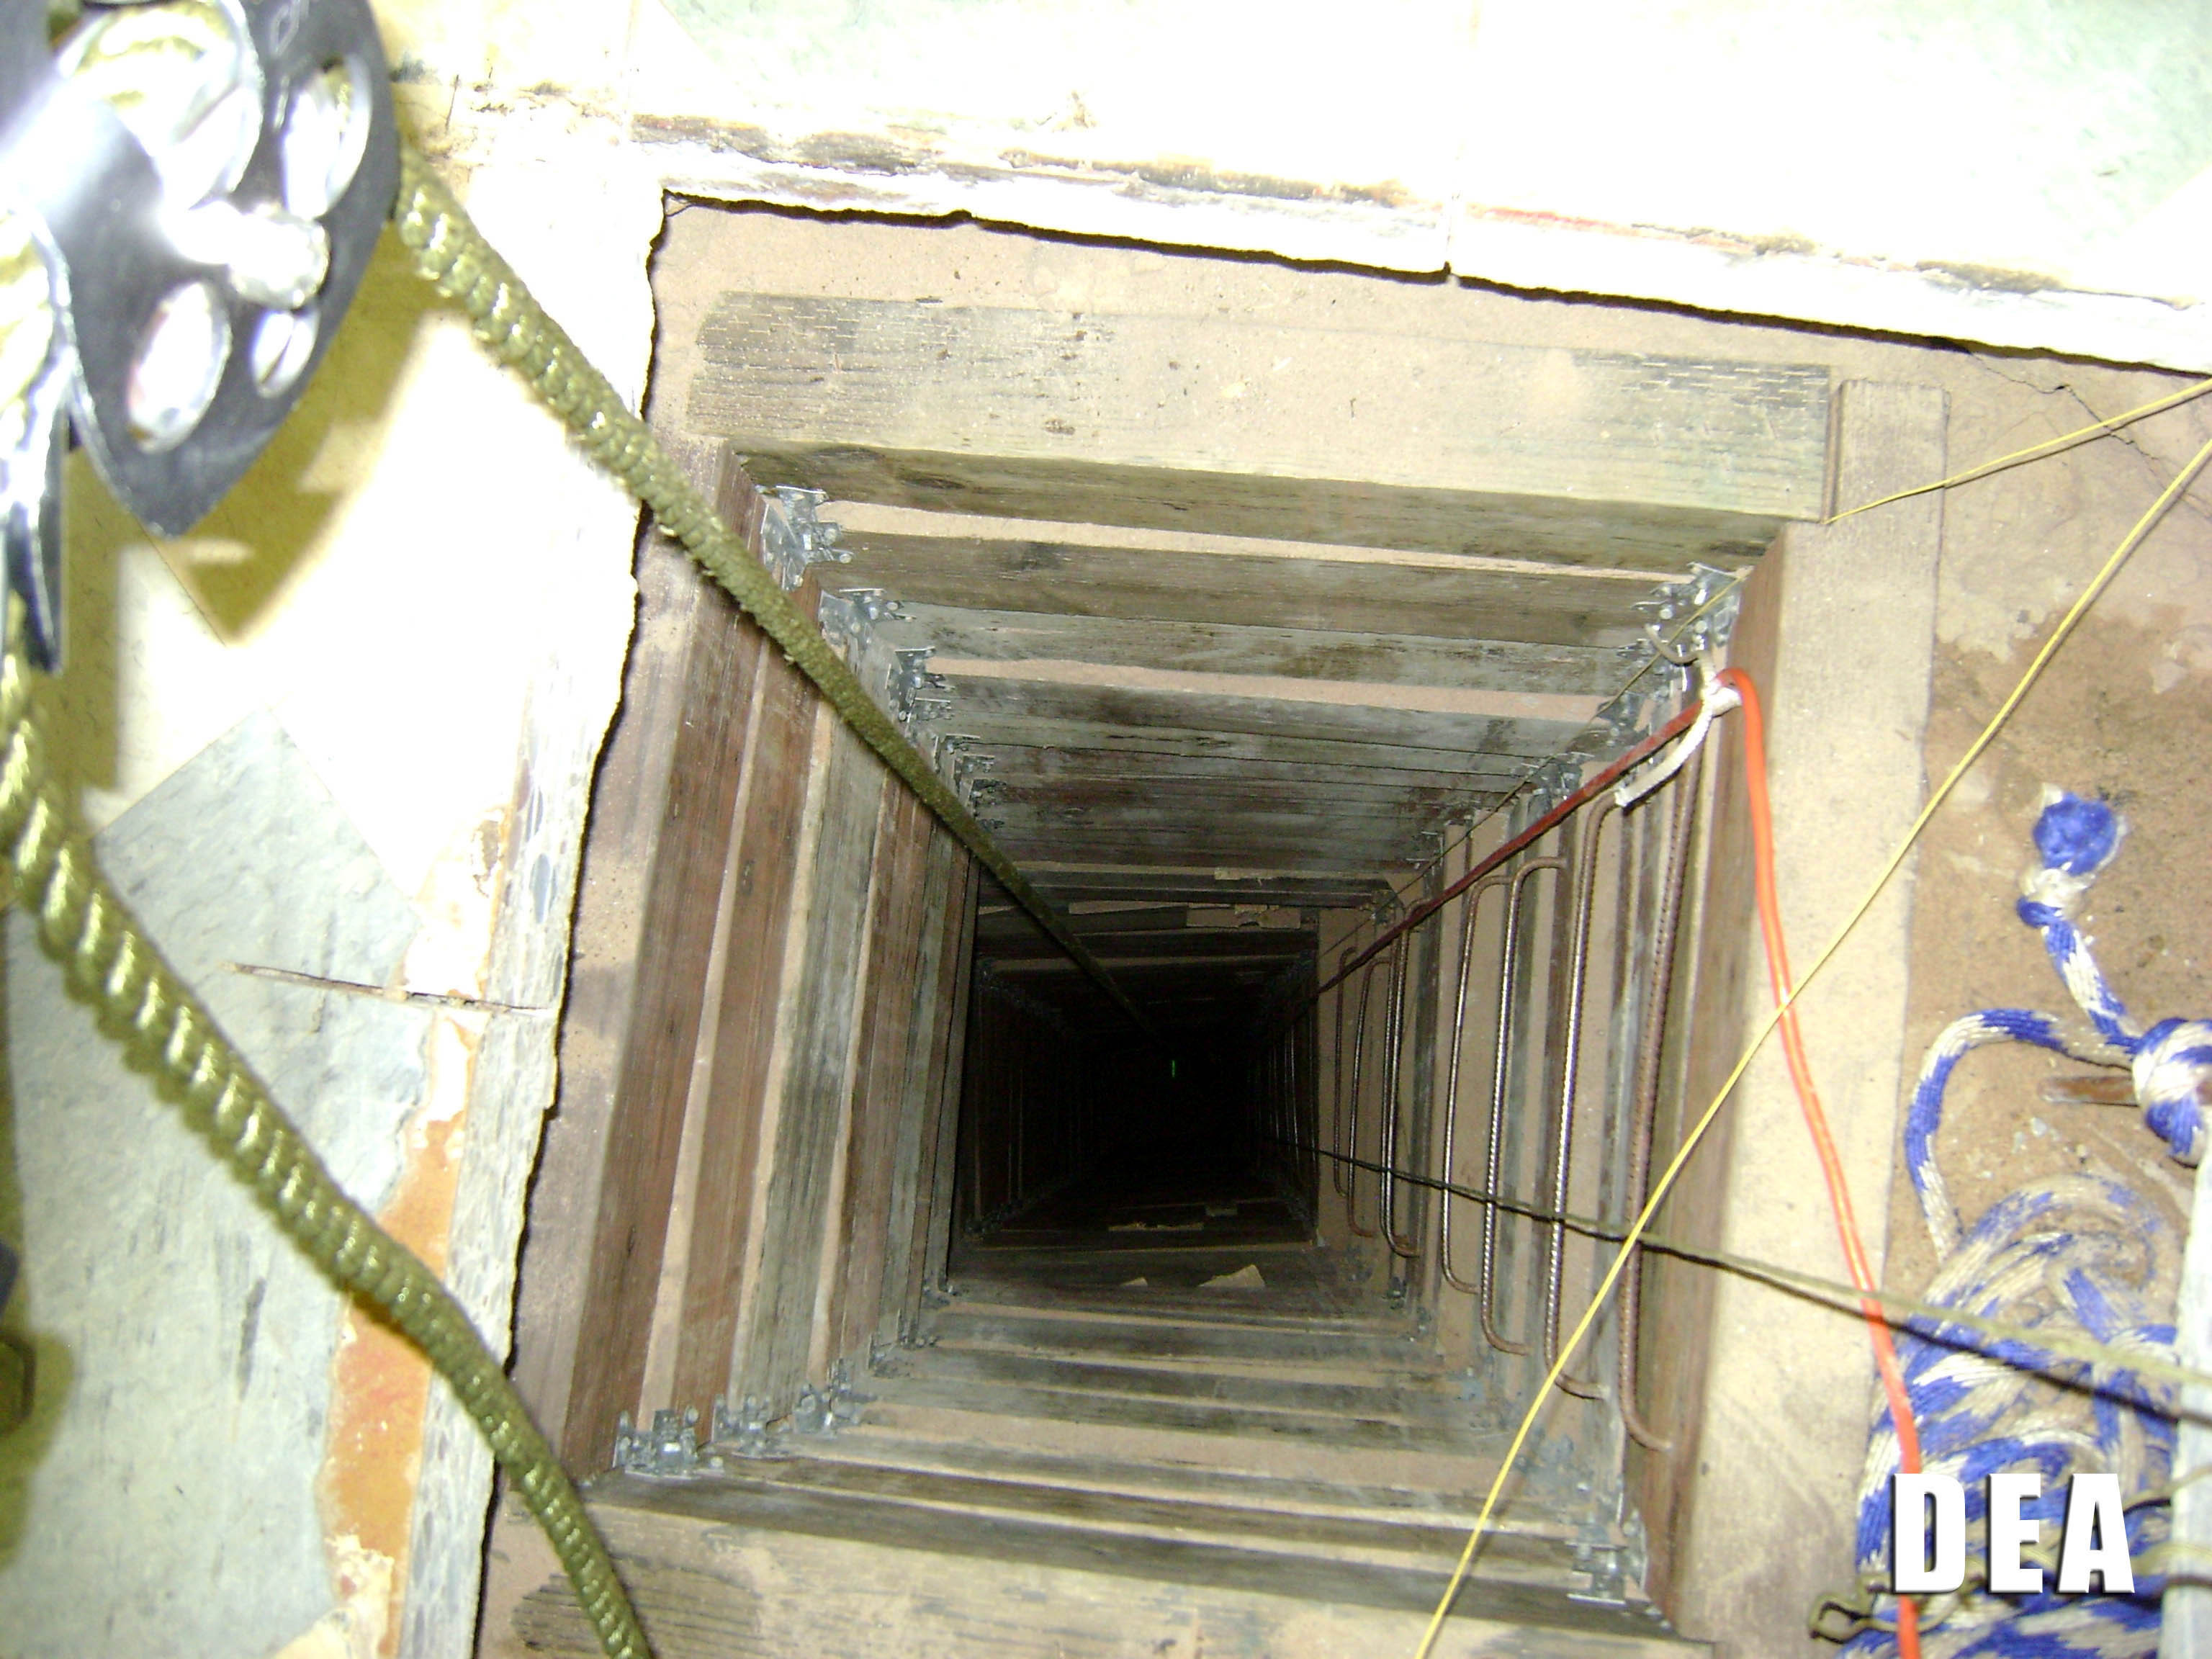 4 sophisticated drug tunnels found on border - CBS News